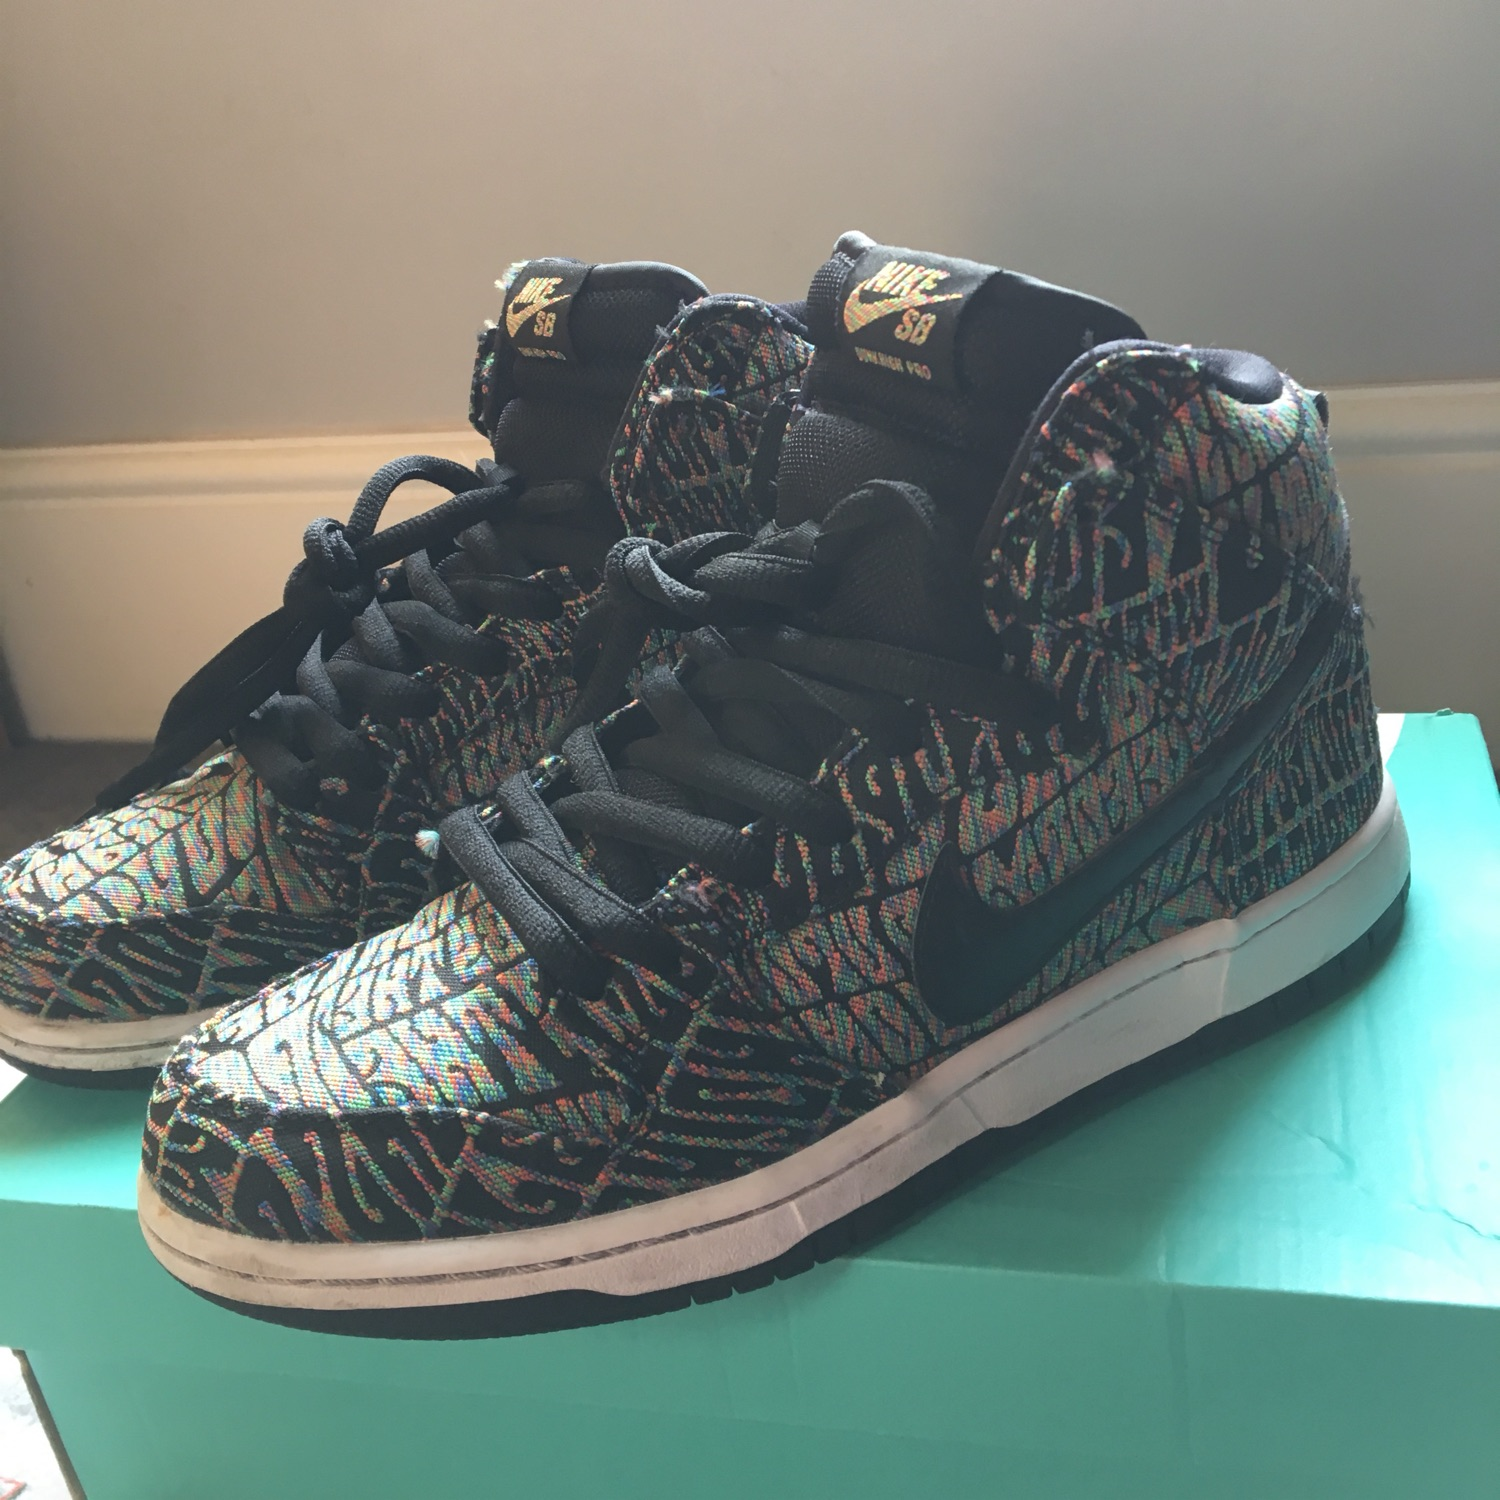 huge discount 71f9a 7c3df Nike Dunk High Premium Sb